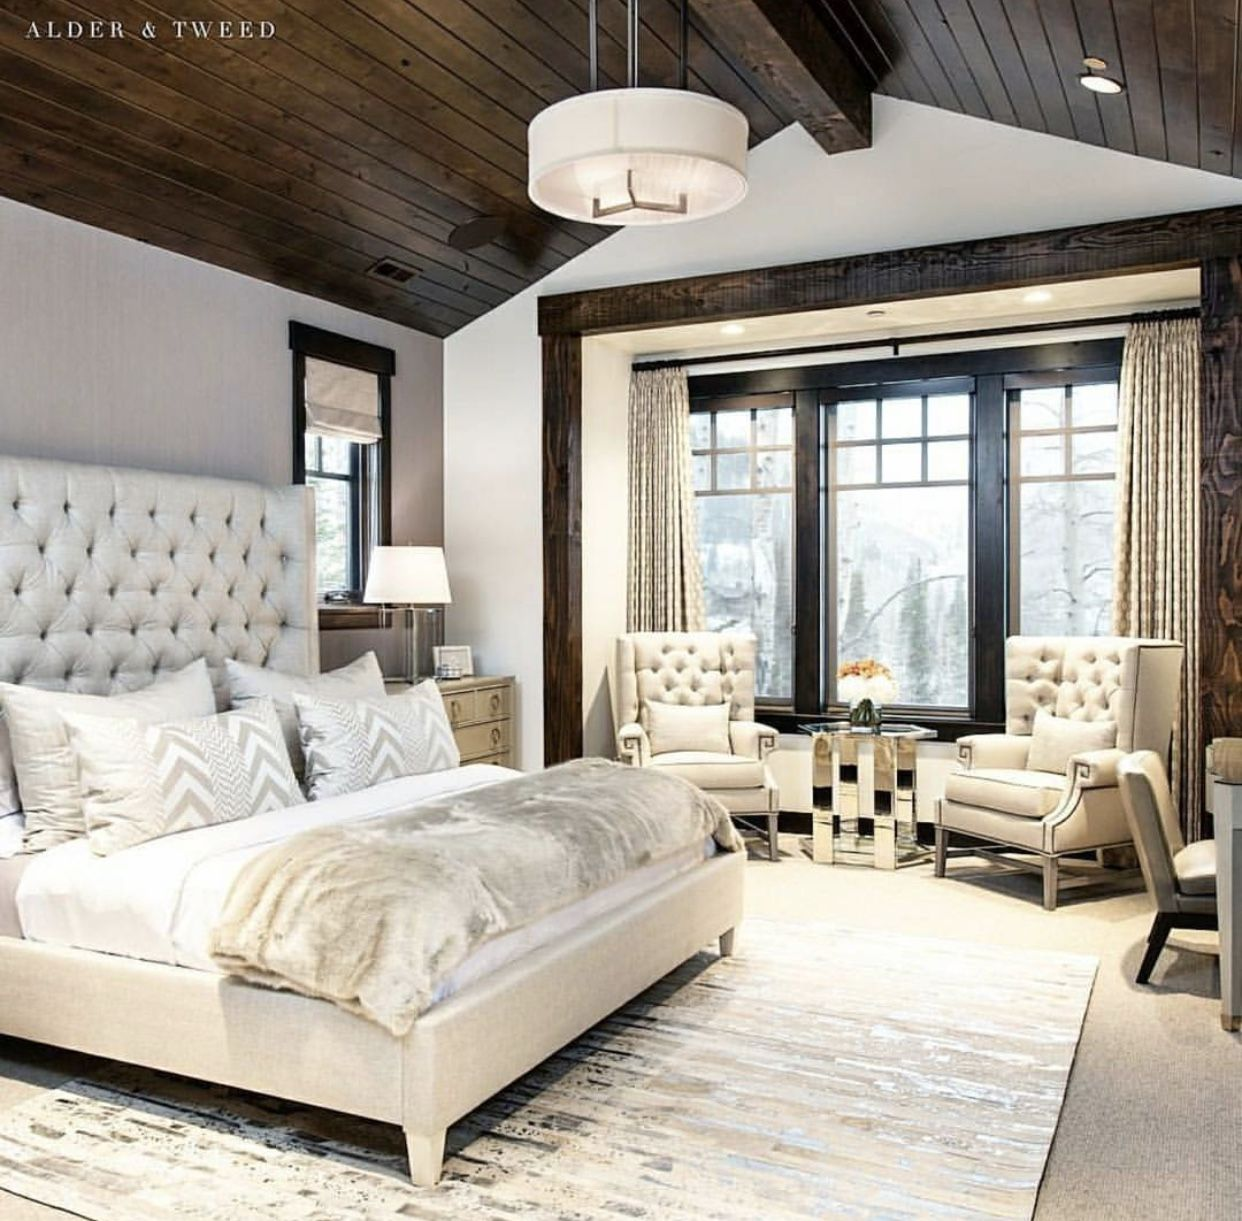 Master bedroom interior design ideas dise os de for Decoracion de habitaciones principales